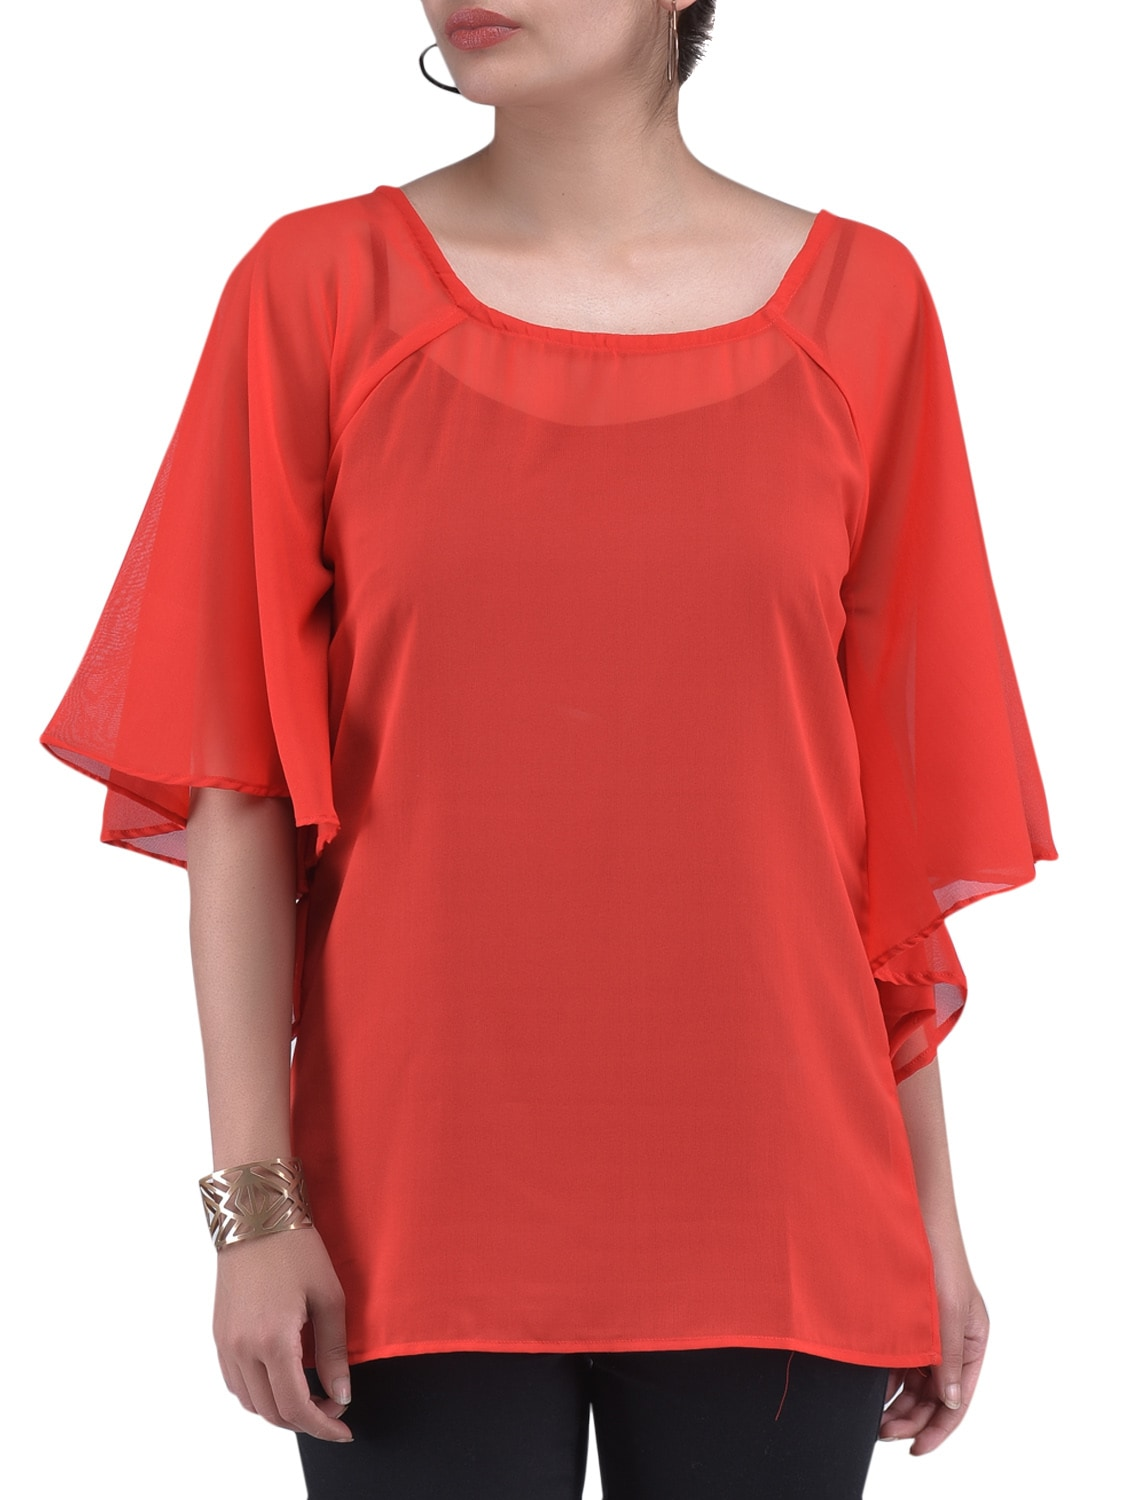 Solid Red Polygeorgette Top - By